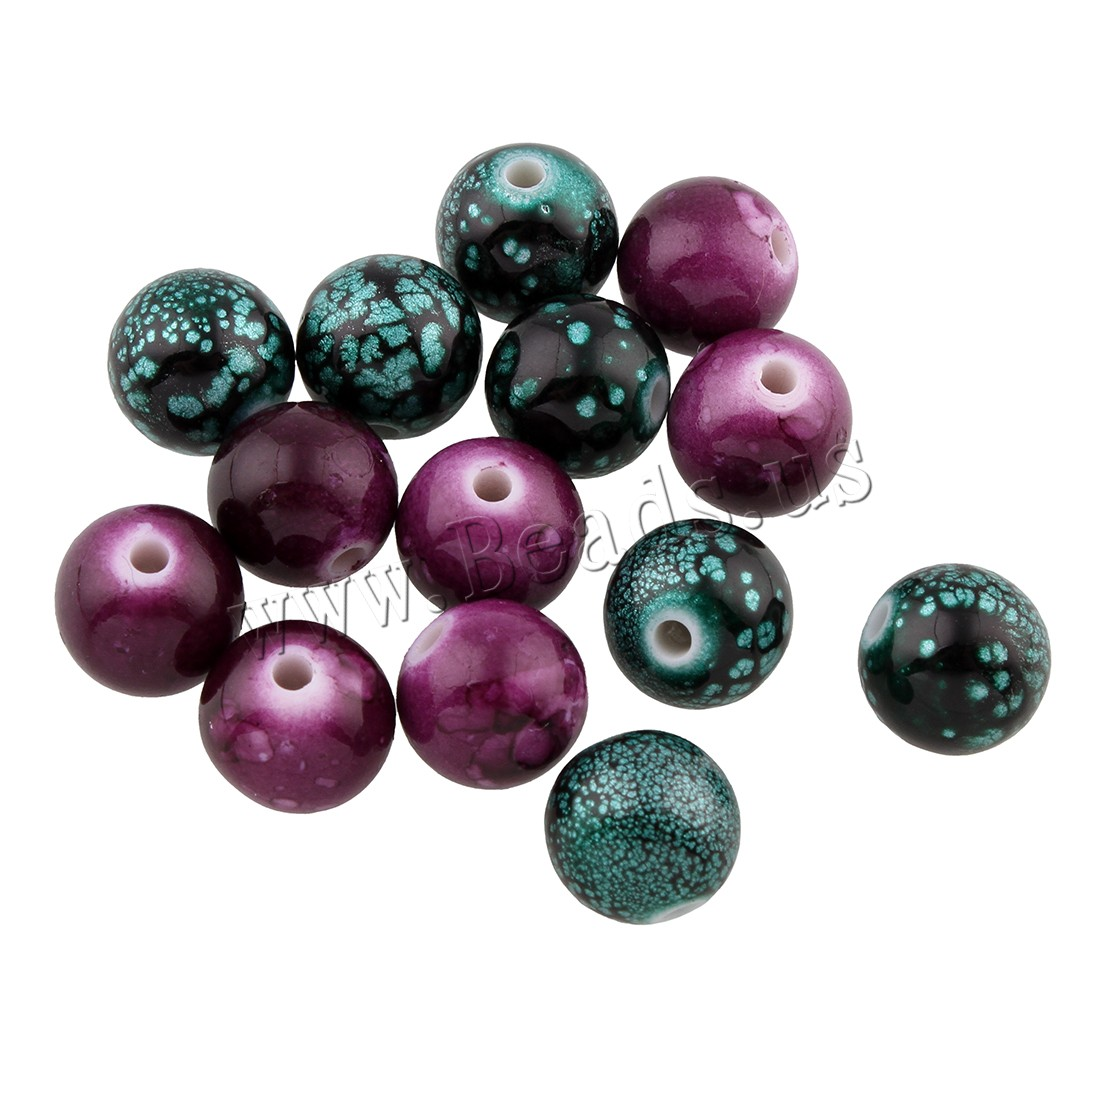 Buy Opaque Acrylic Beads Round solid color mixed colors 9x10x10mm Hole:Approx 1mm Approx 885PCs/Bag Sold Bag